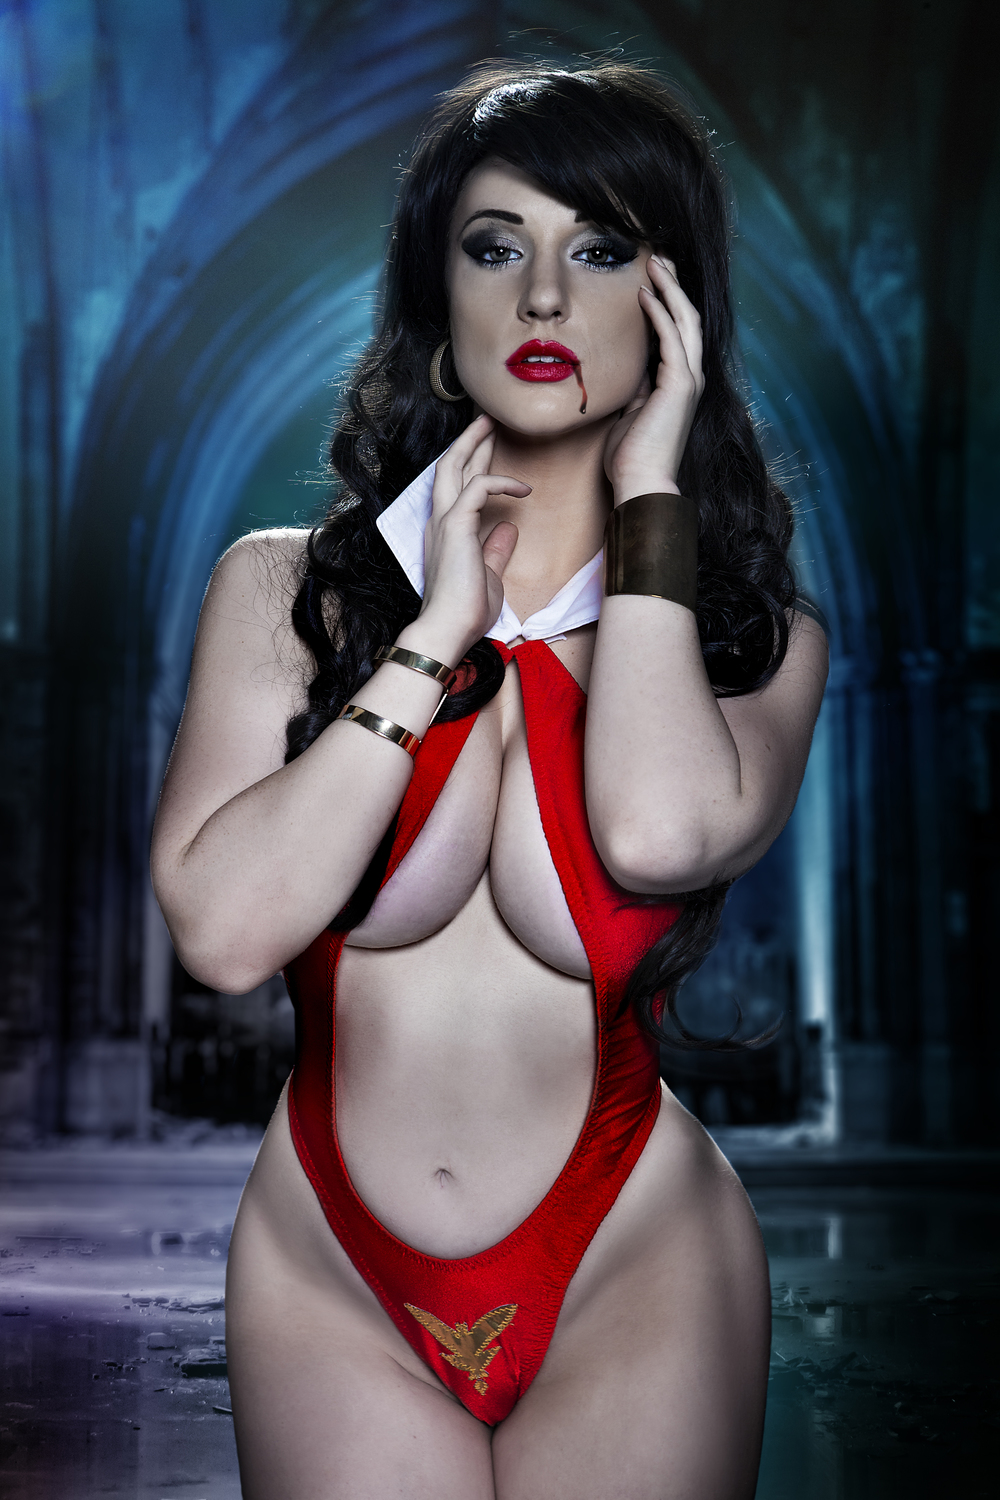 Cosplay Vampirella by Claire Ana, posted on Saturday, 14 July 2018